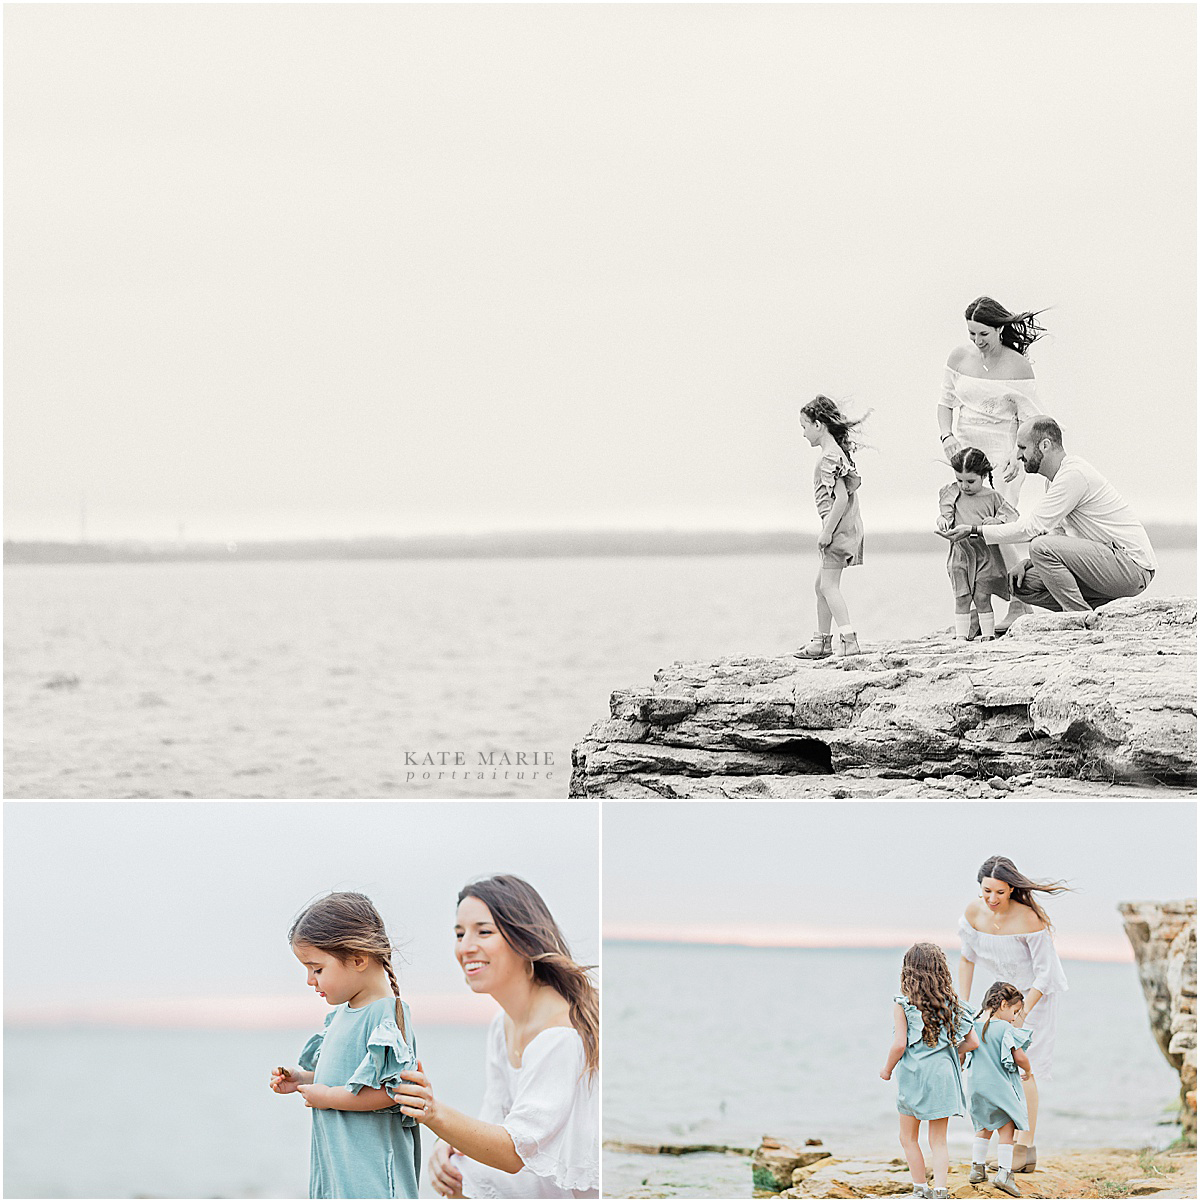 dfw_Family_Photographer_Flower_Mound_Photographer kate Marie portraiture_lm_12.jpg